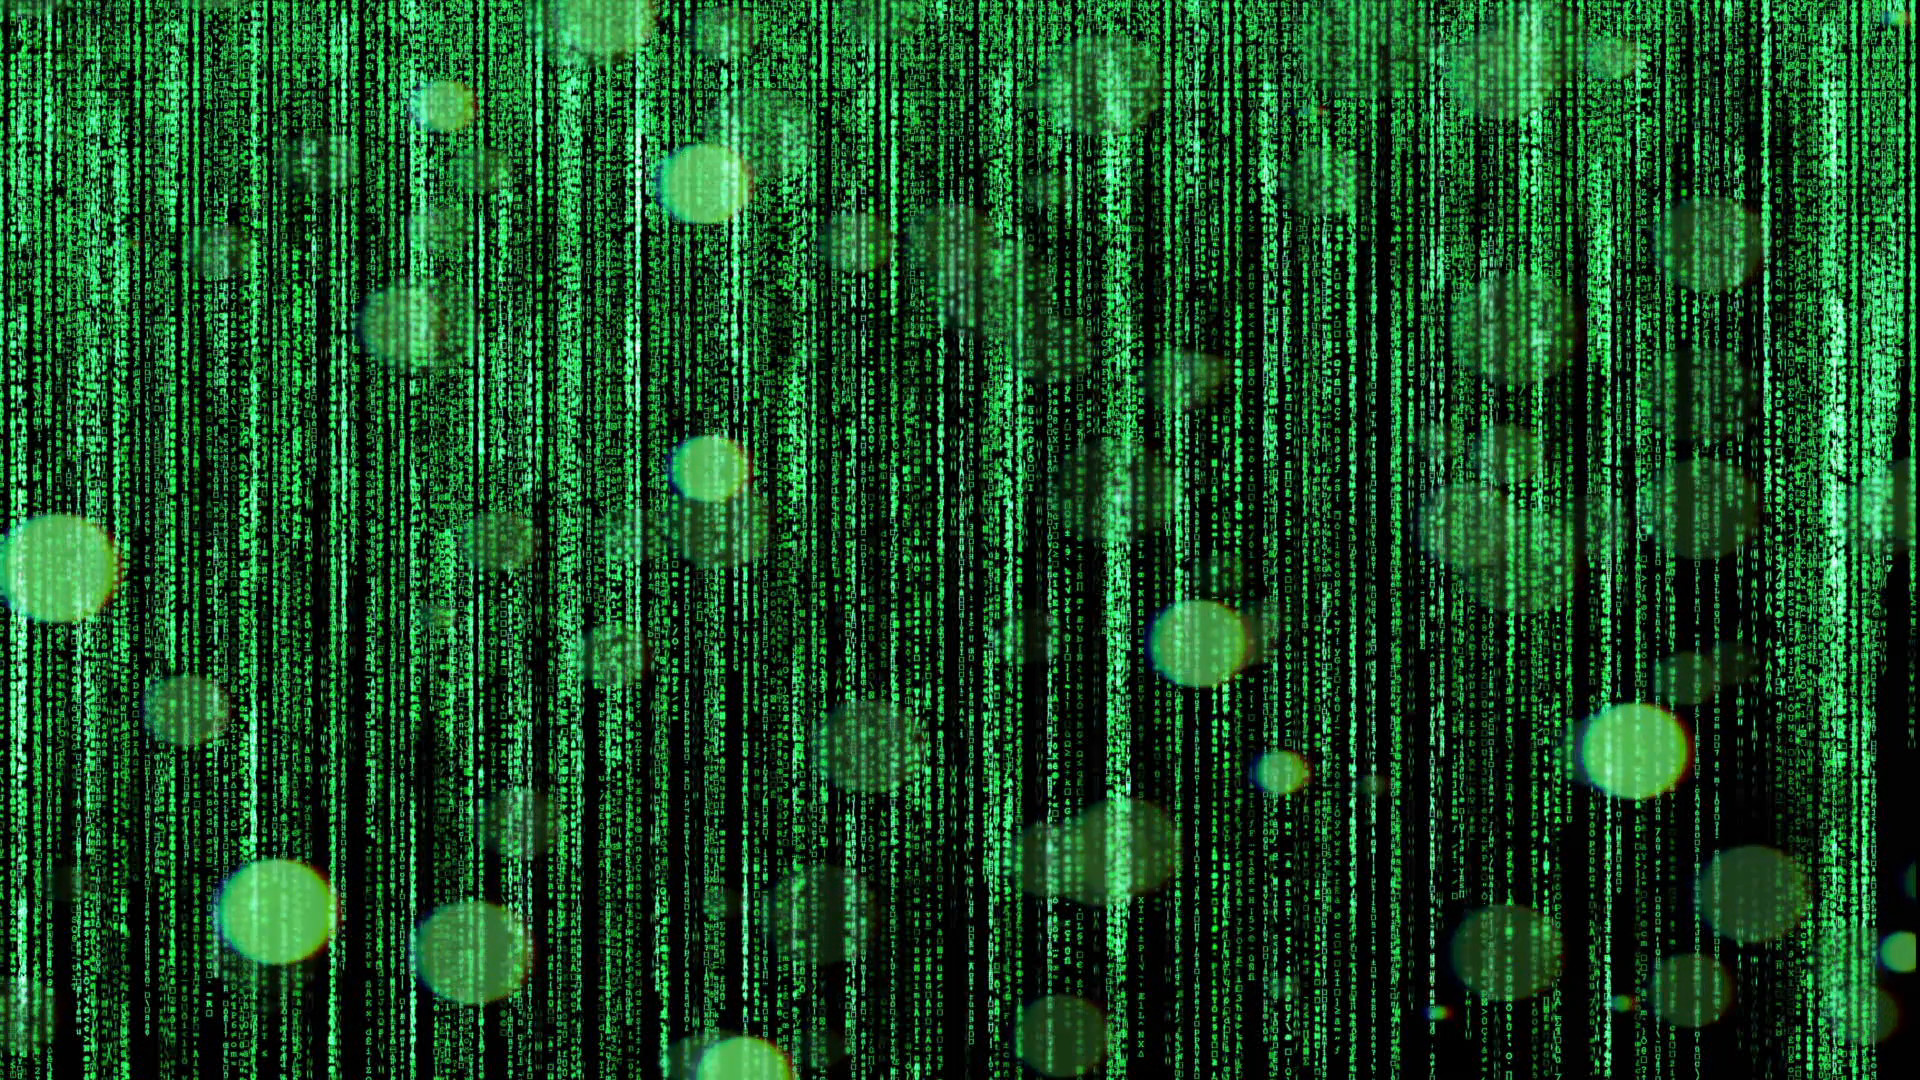 moving binary code wallpaper (62+ images)